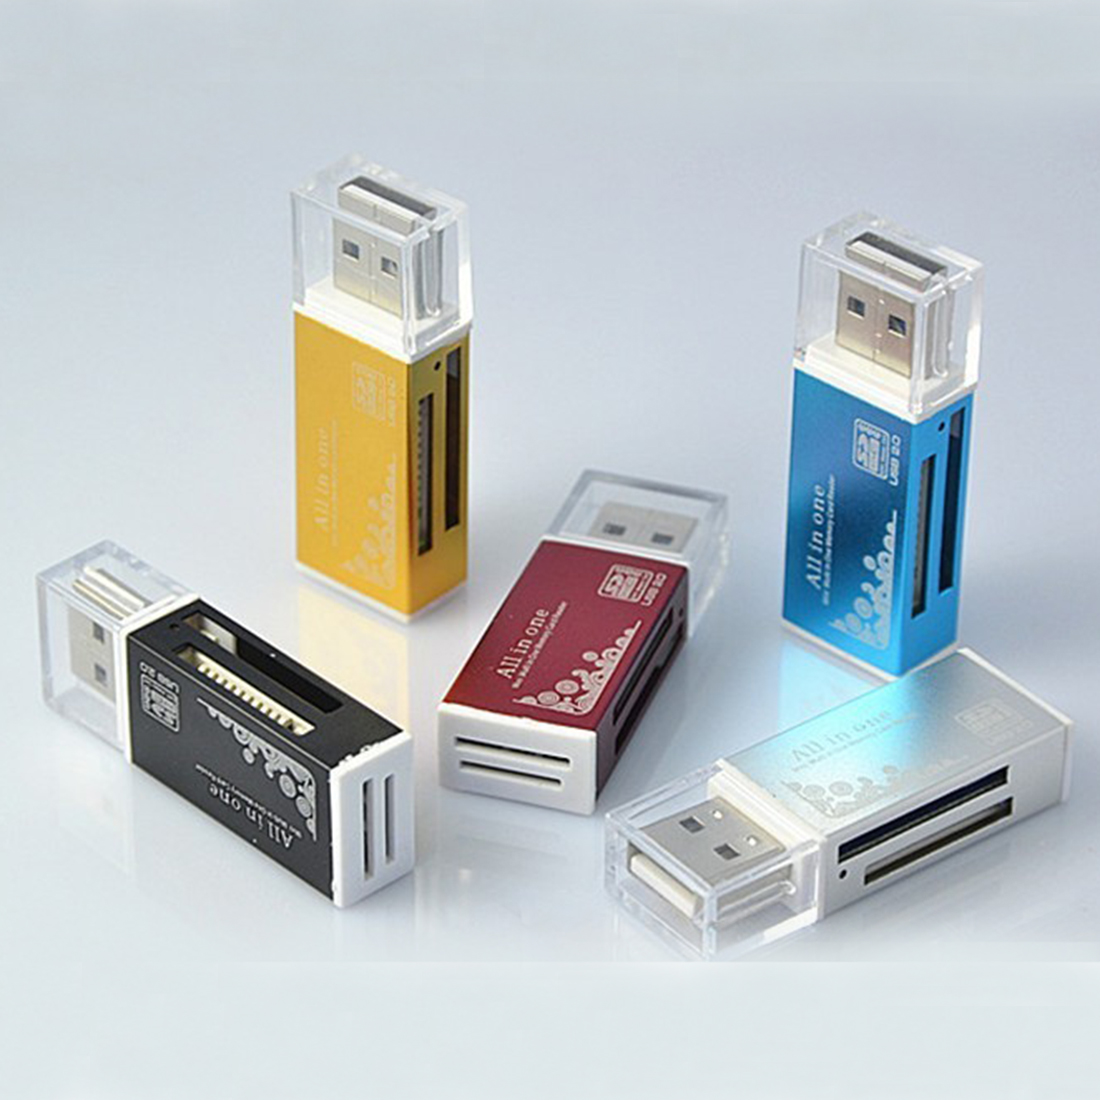 Etmakit   Fashion All In One Card Reader Multi For SD SDHC MMC RS MMC TF Micro SD MS Random Color